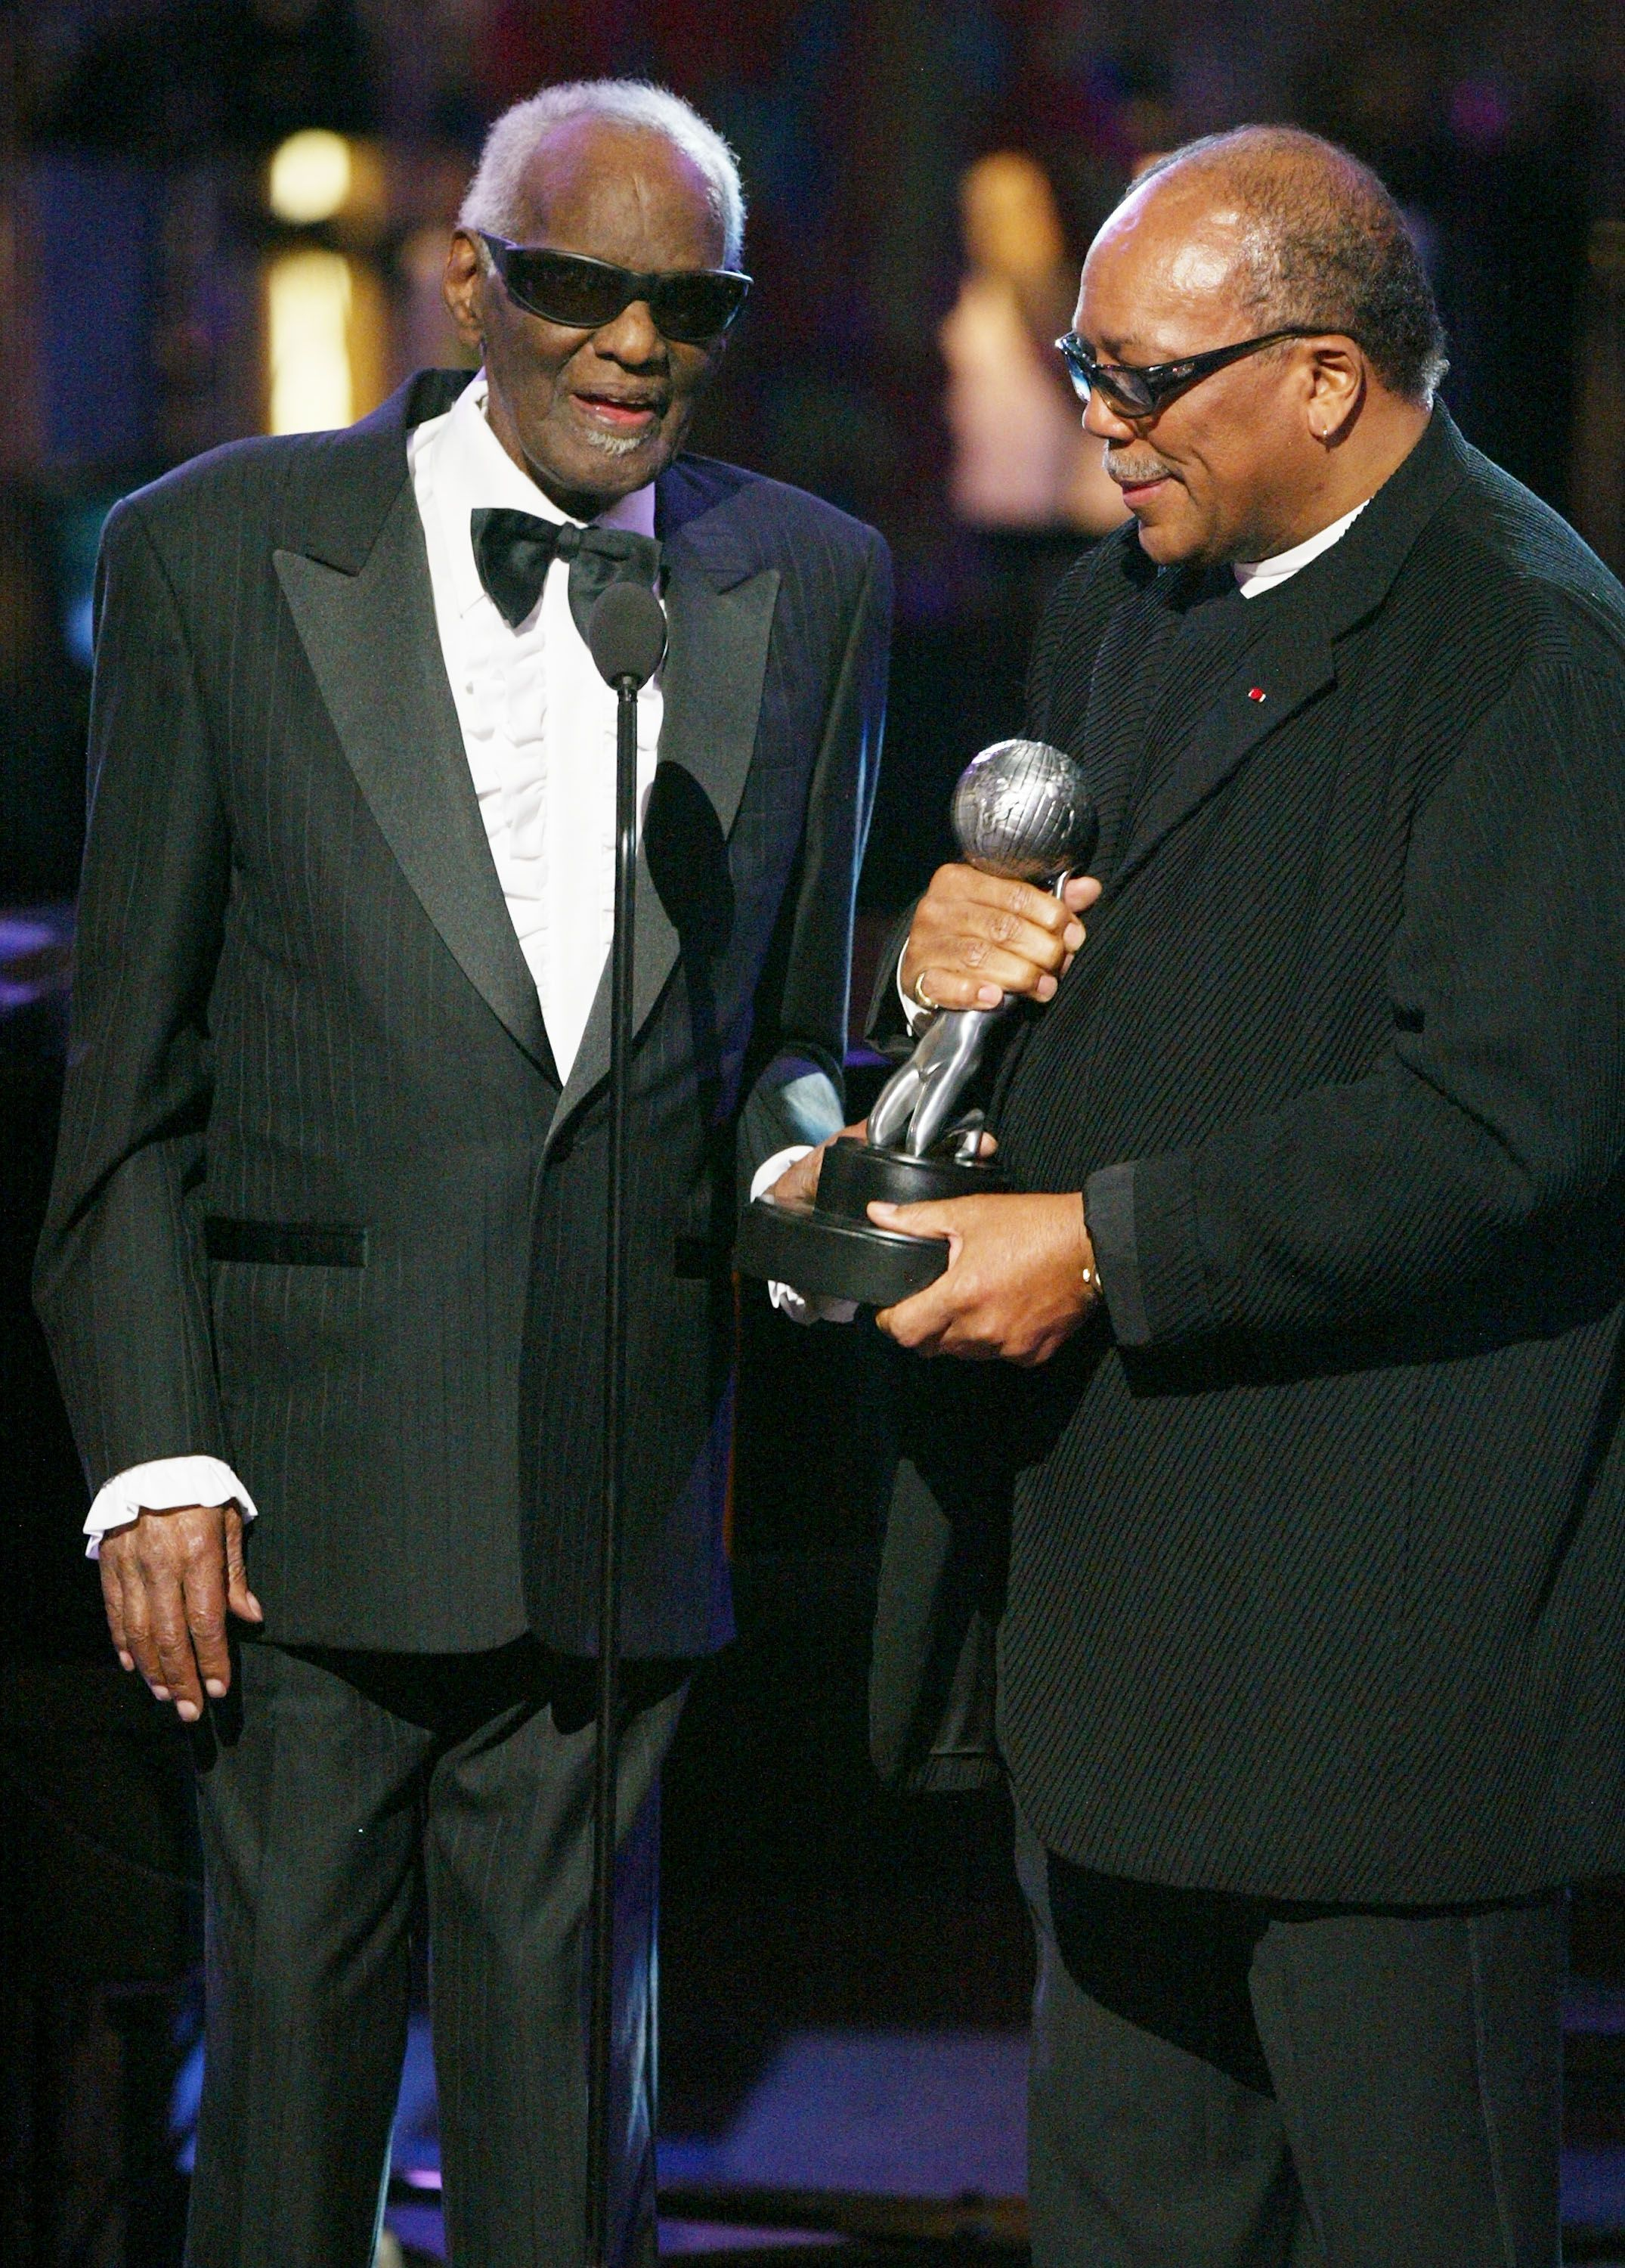 Ray Charles and Quincy Jones at the 35th Annual NAACP Image Awards at the Universal Amphitheatre on March 6, 2004, in Hollywood, California | Photo: Kevin Winter/Getty Images